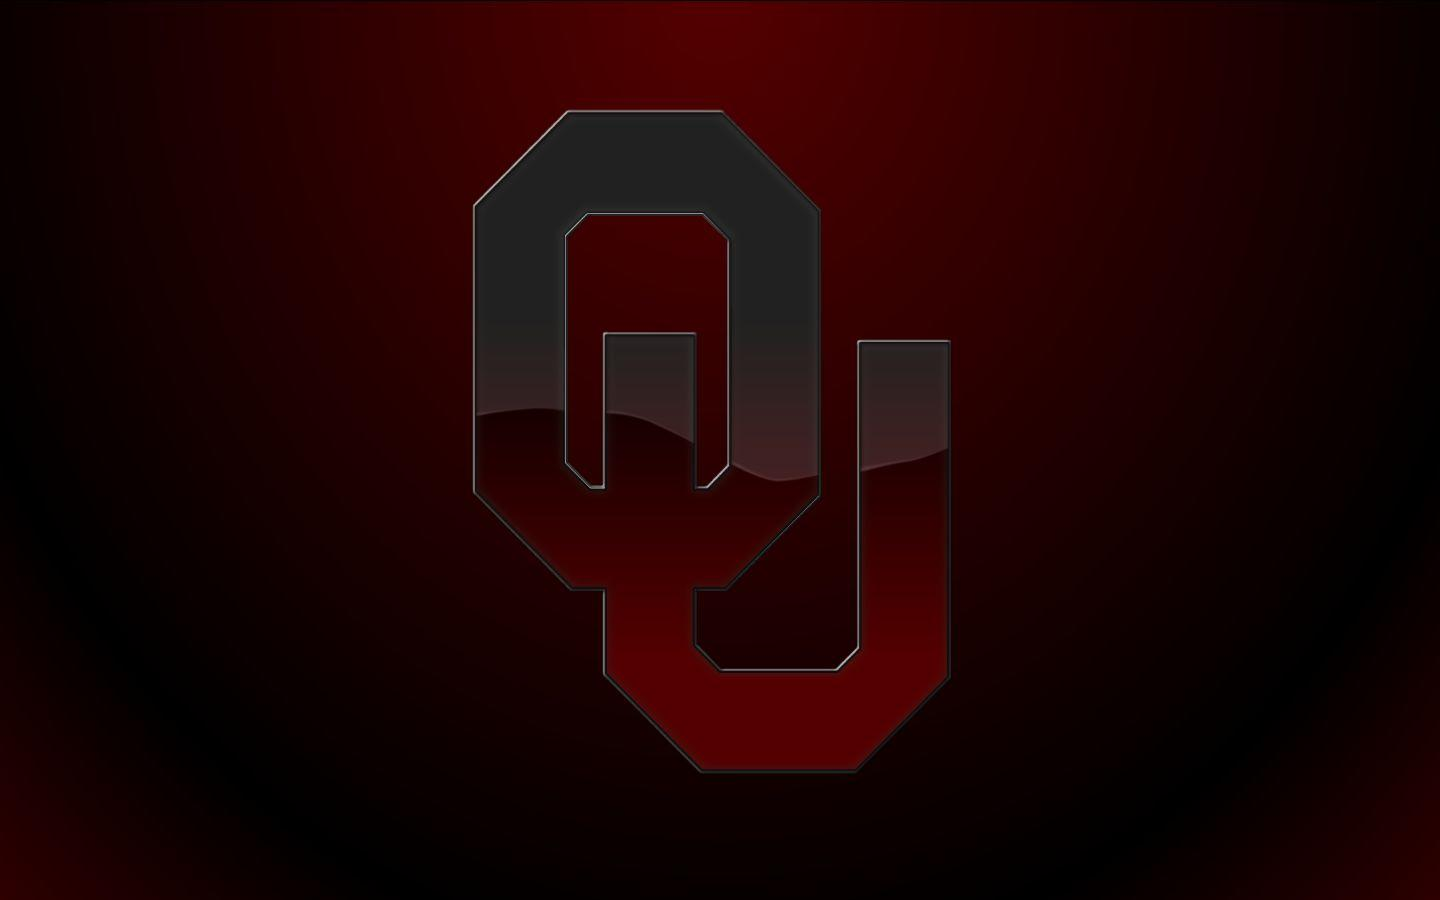 ou sooners wallpaper for laptop - photo #7